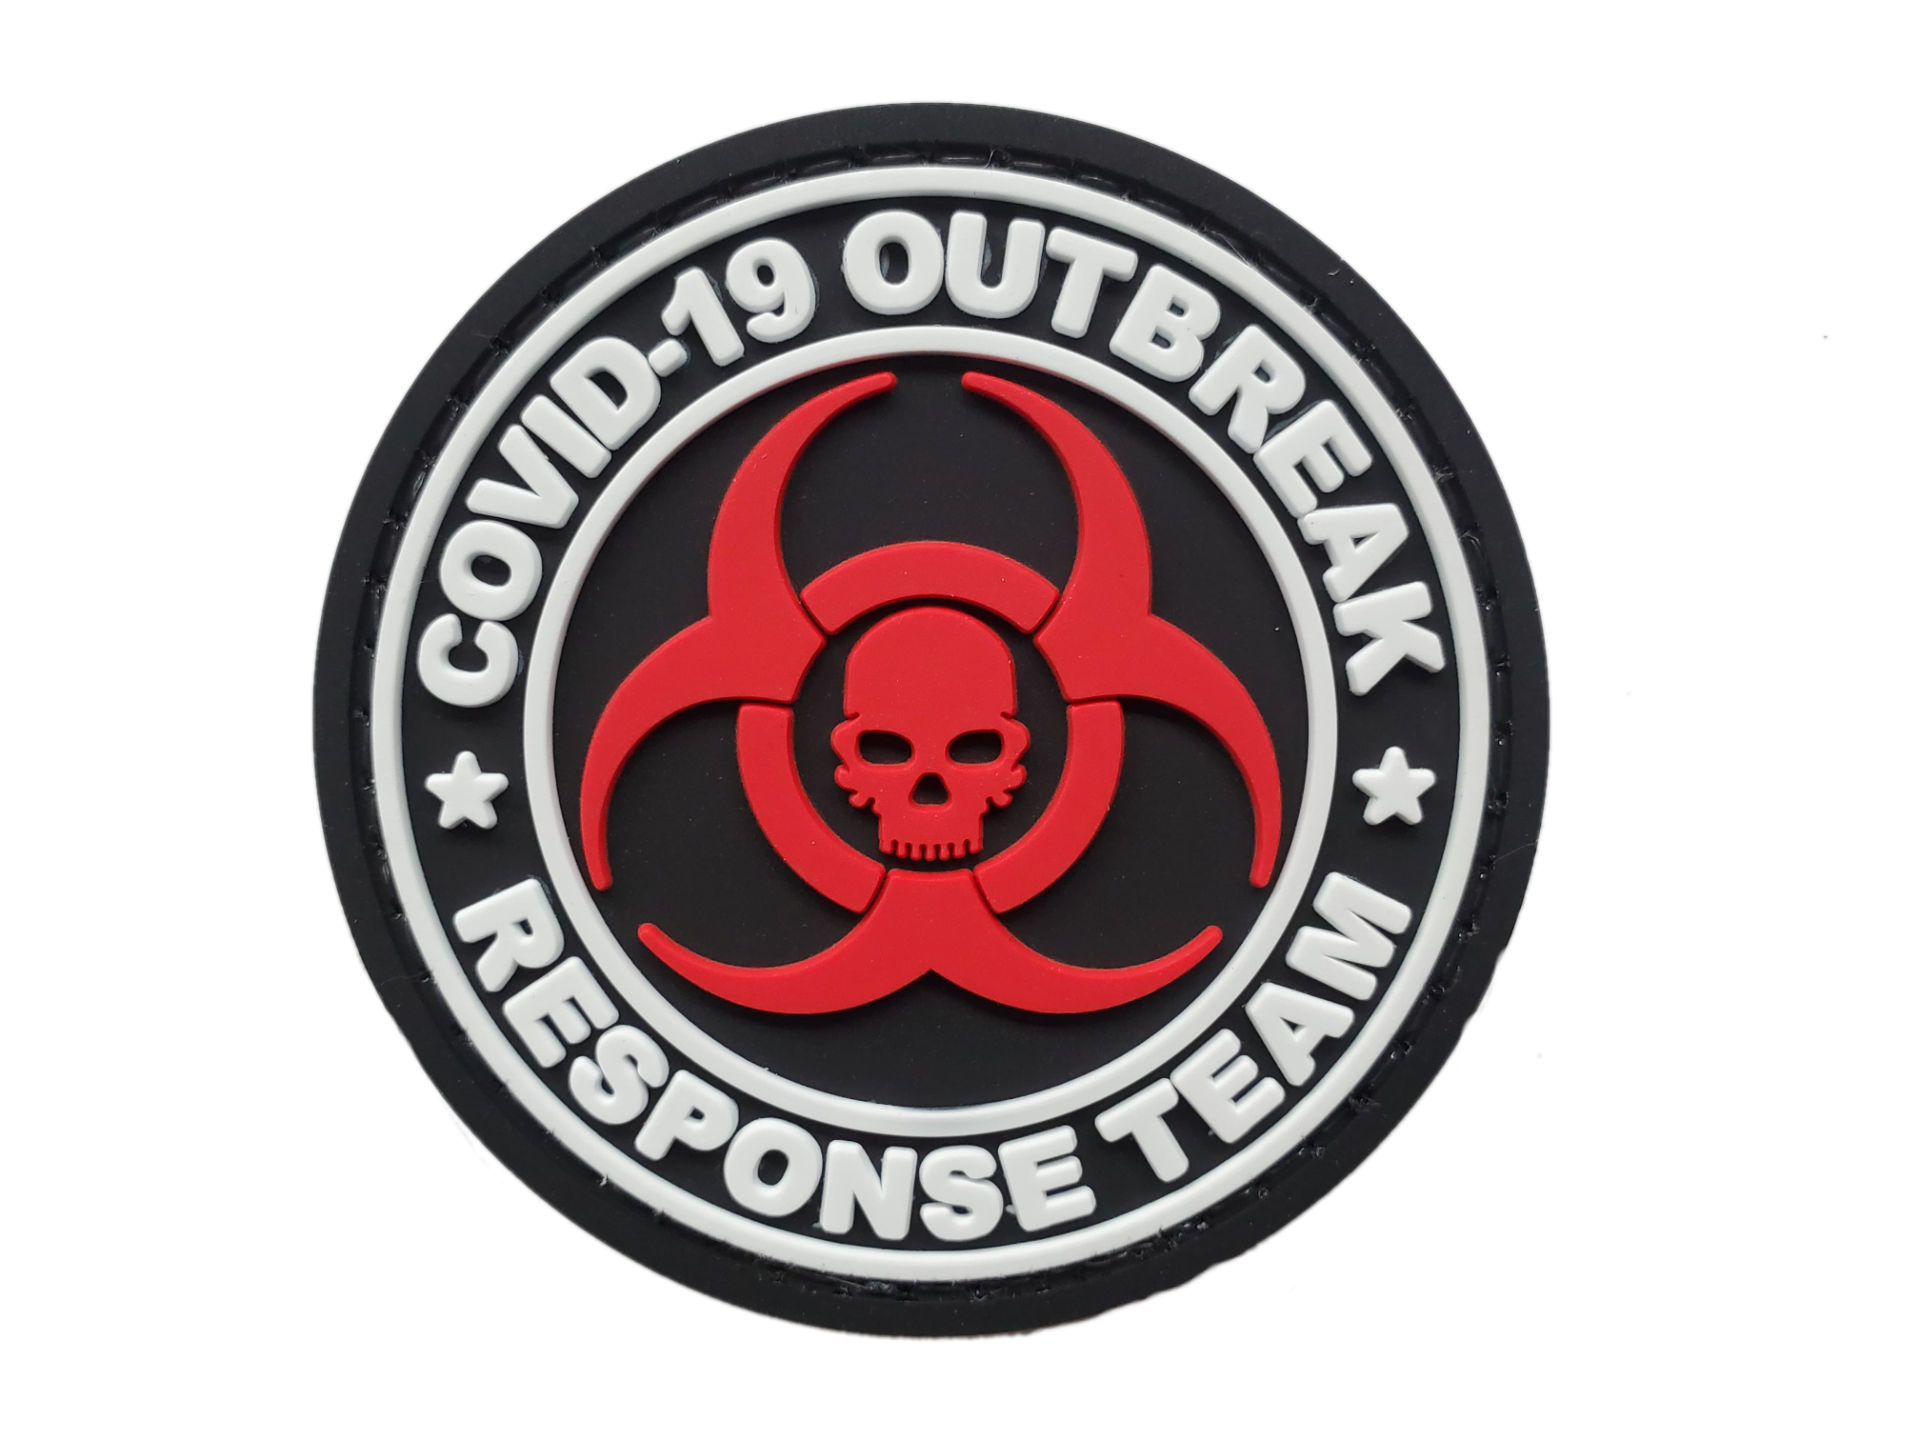 COVID-19 Outbreak Response  Team PVC Morale Patch